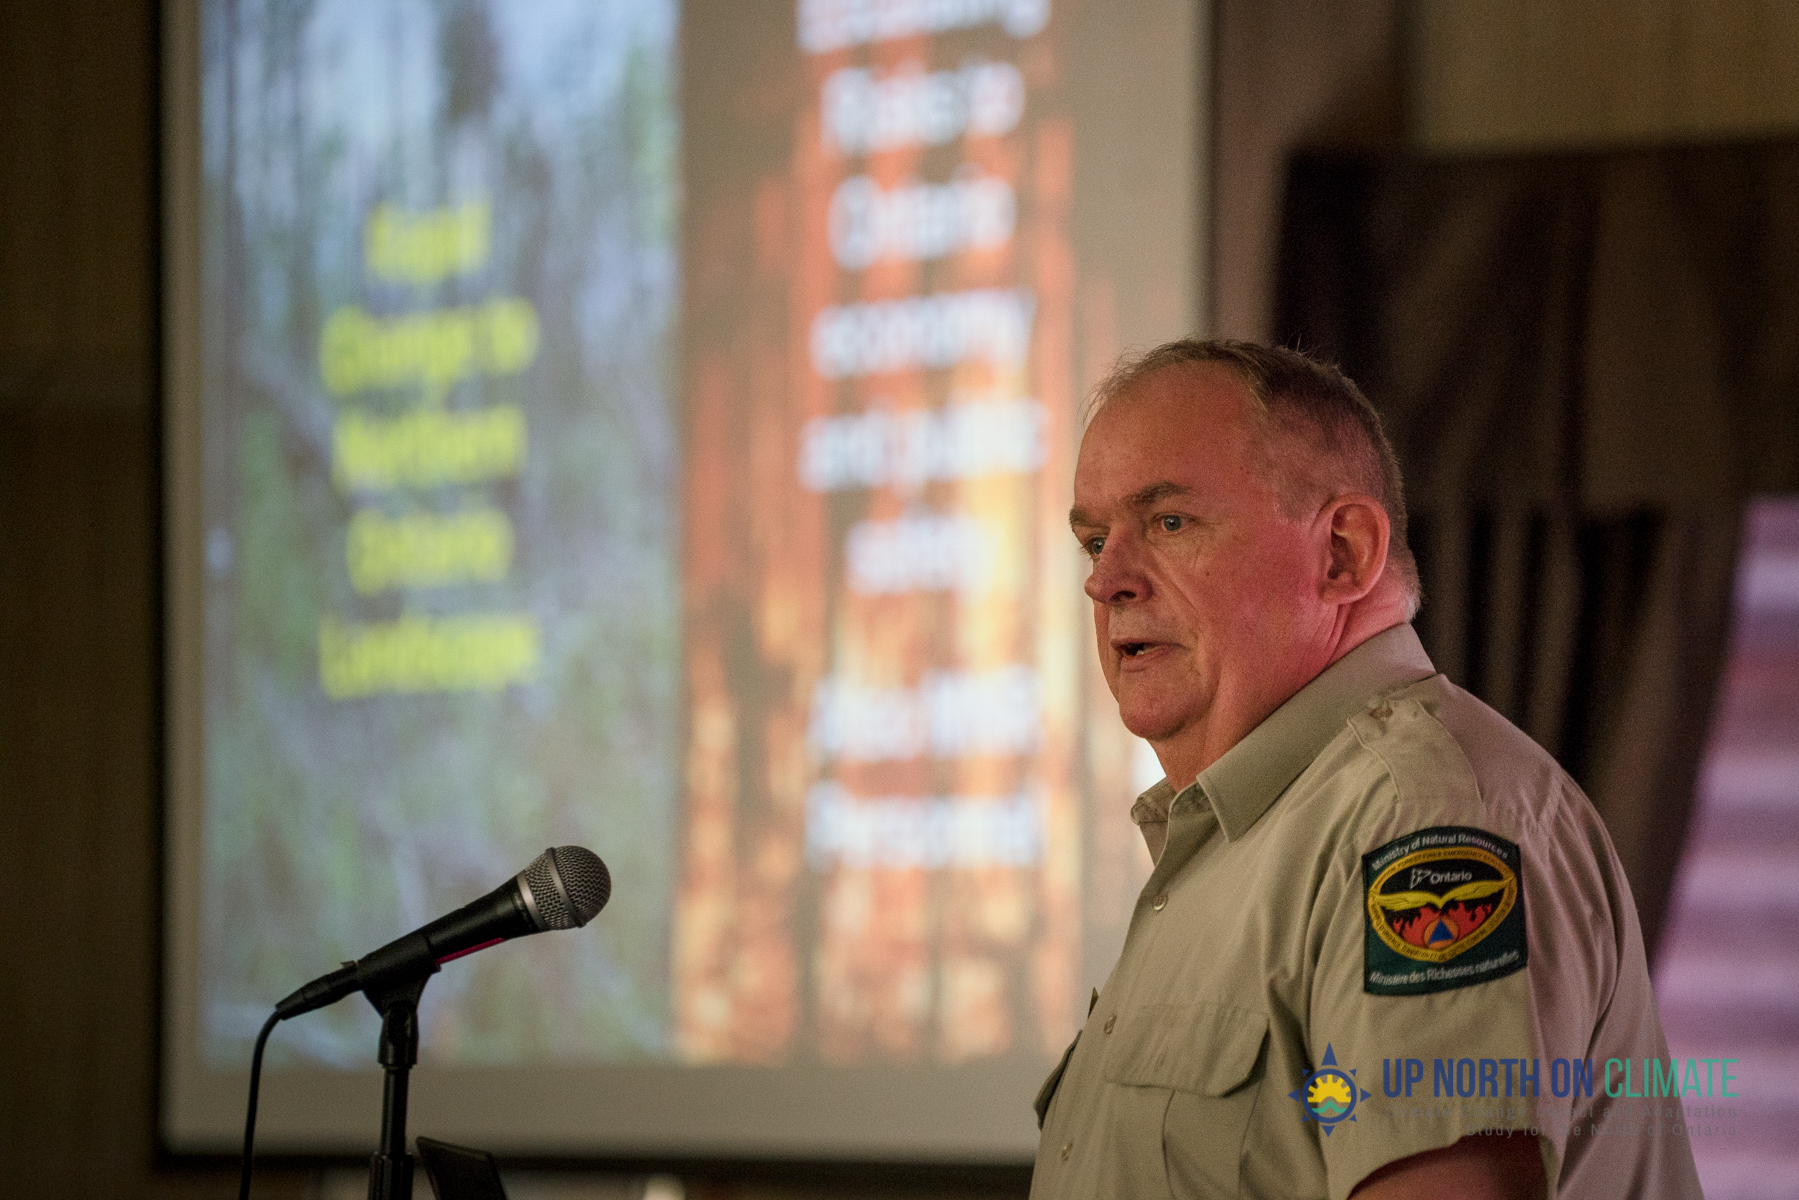 UpNorthonClimate2018-07819 Dave Cleaveley - Fire.jpg